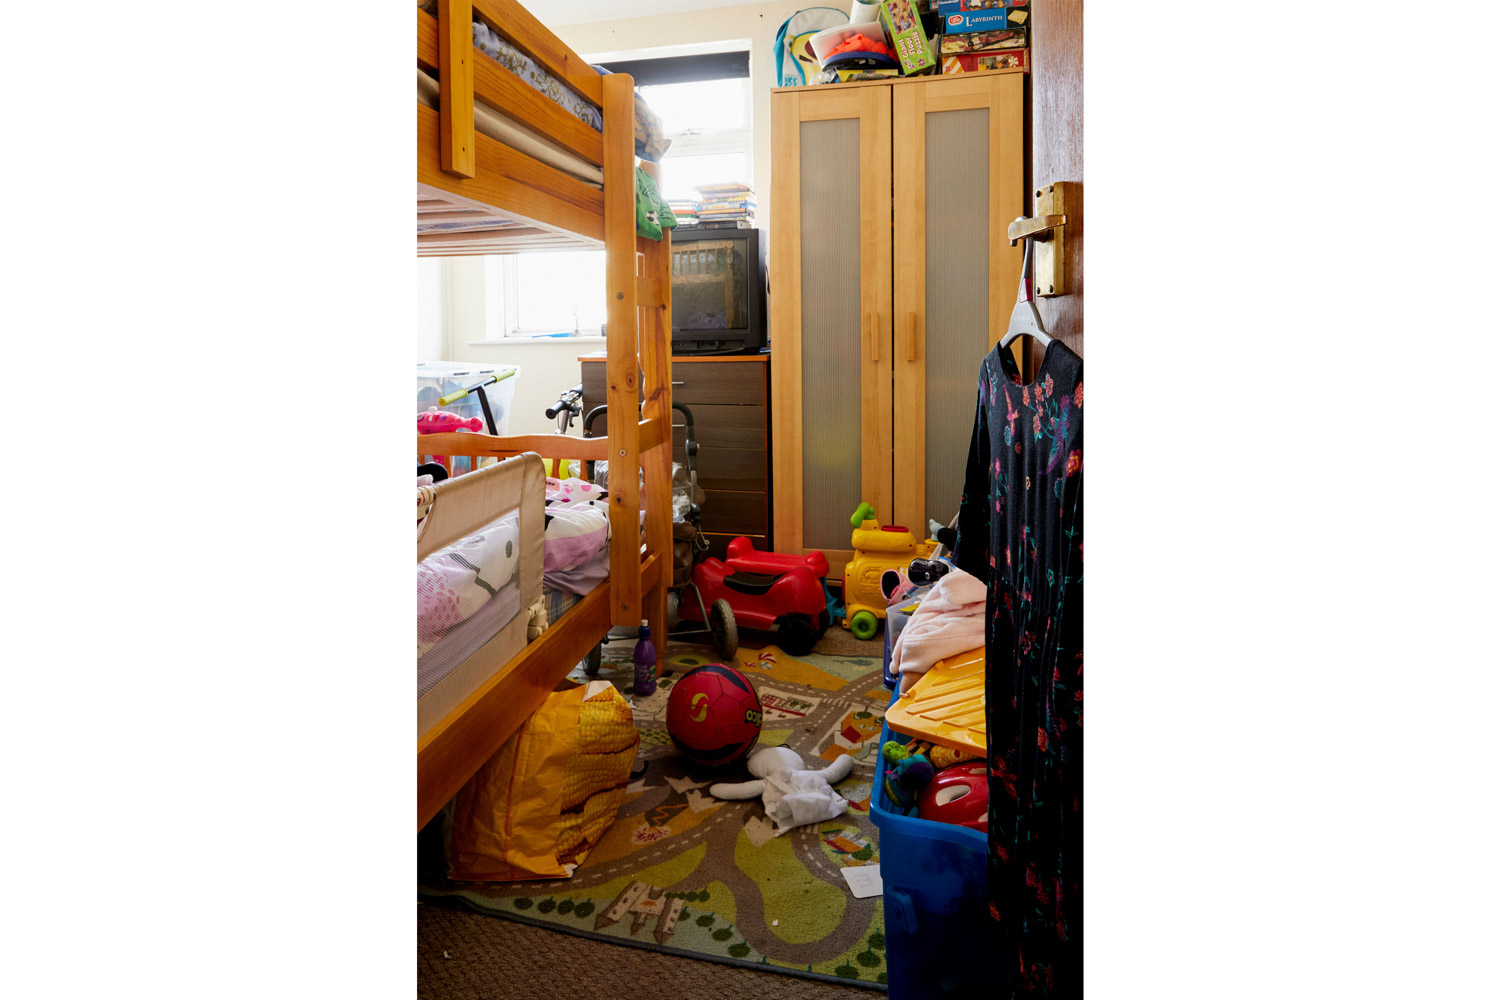 Dillan and Rachel   This room is shared by Dillan, eight, and his little sister Rachel. They live in temporary accommodation with their mum. There is no space in the flat for their older brother Kyle, who lives with his grandma.  The kids were split up in 2016 when they left their home for a women's refuge. Their mum, Deborah, was being raped by their dad.  Four-year-old Rachel still spends time with him in Sussex. The court permits these visits if he locks himself in his bedroom at night, but Rachel says she sleeps in her dad's bed.  Social Services say they can't do anything, and they shift the conversation towards Deborah's previous drug addiction.